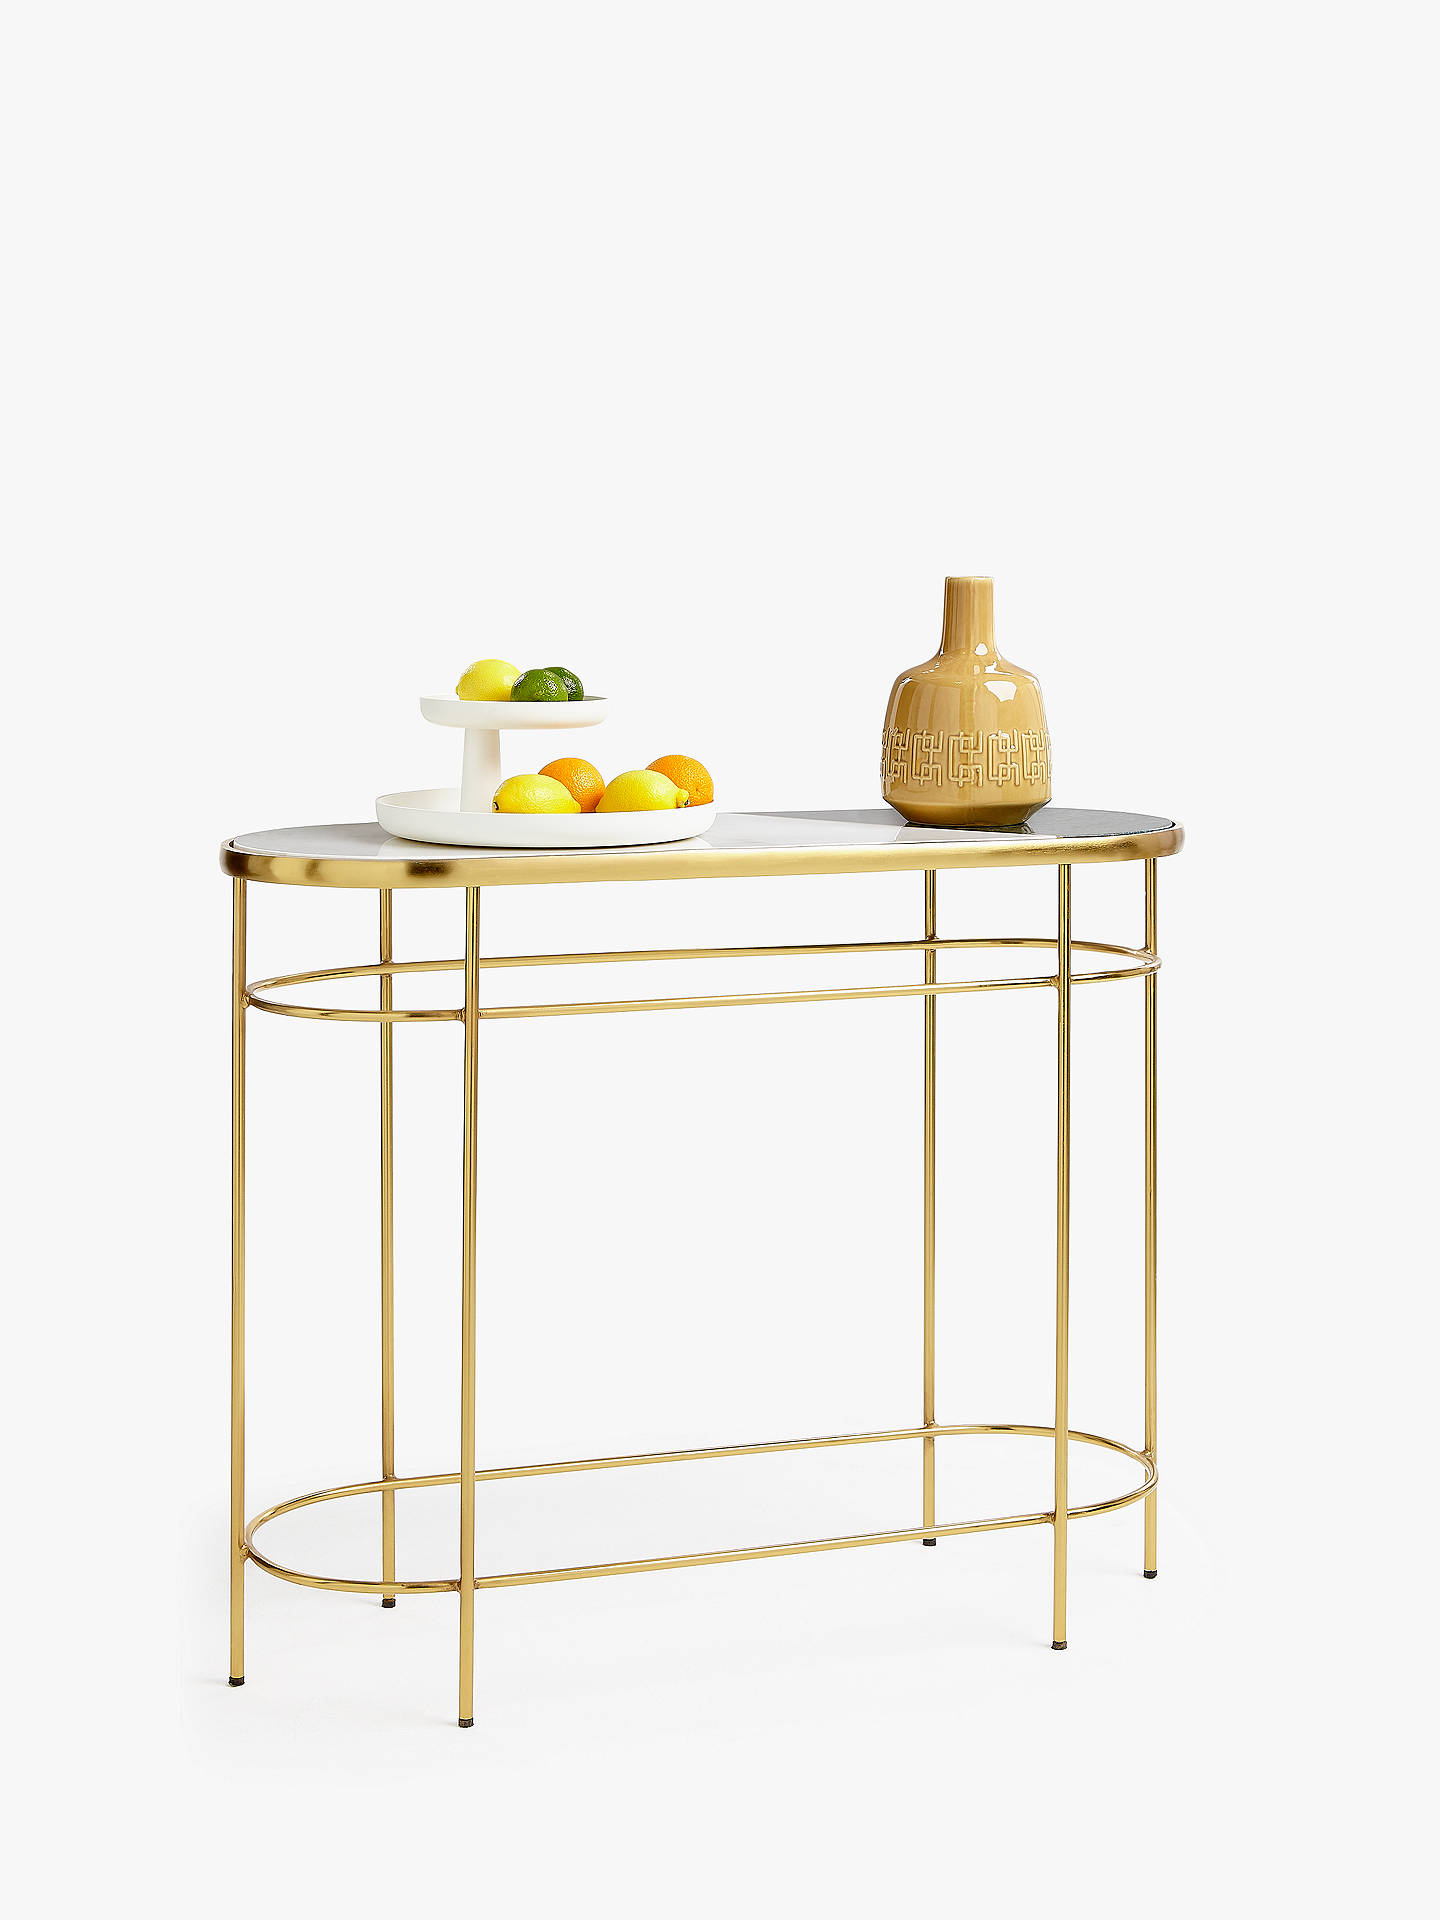 Prime John Lewis Partners Swoon Sartre Marble Console Table Gold Green Machost Co Dining Chair Design Ideas Machostcouk